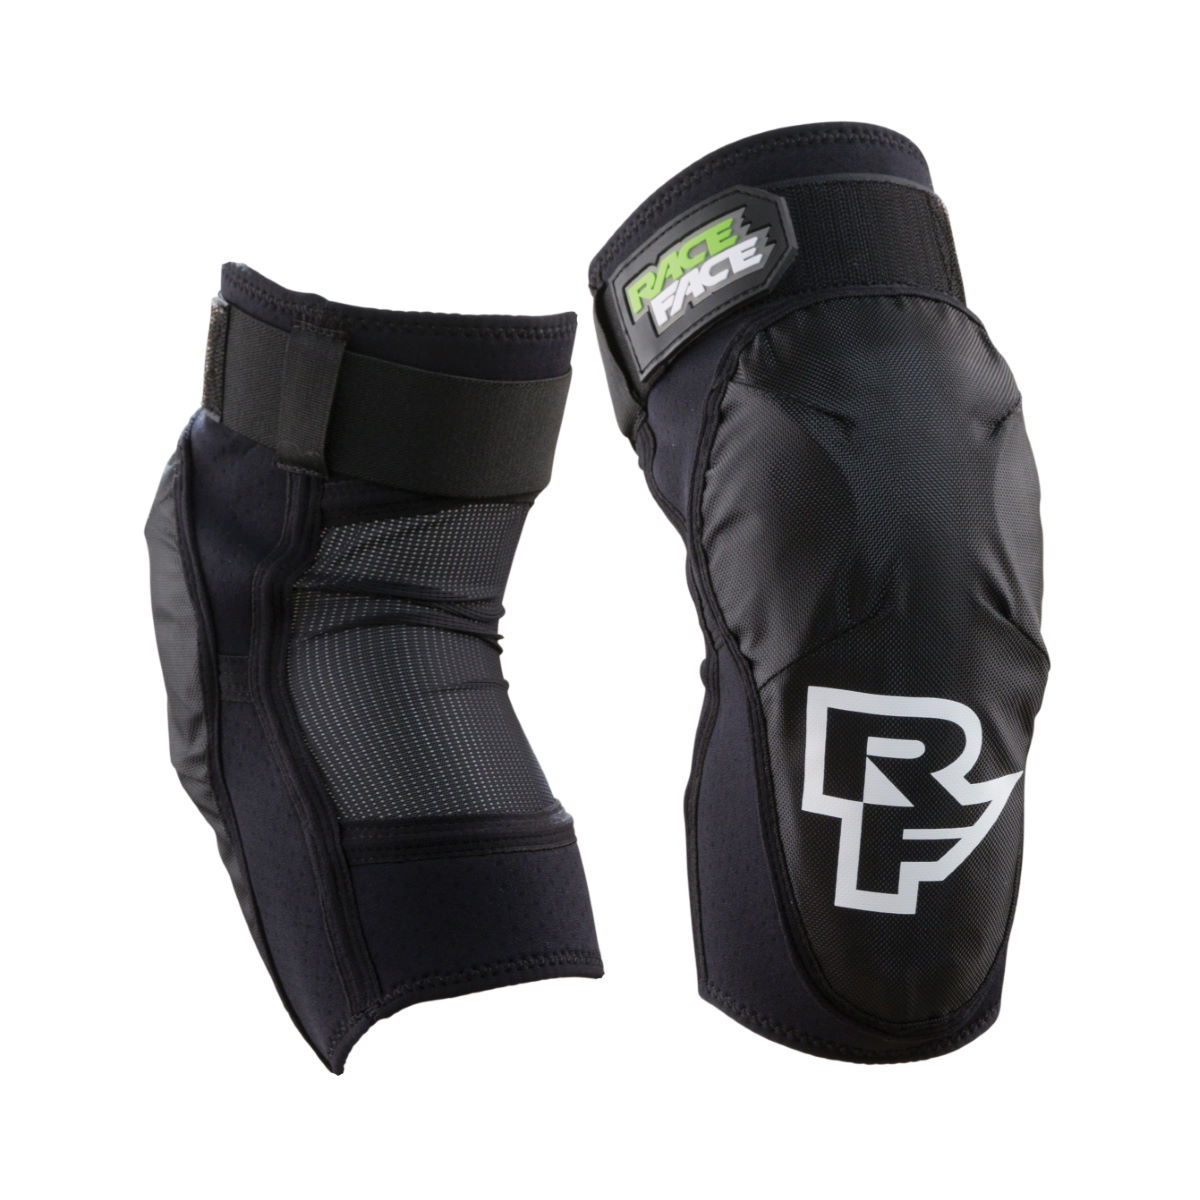 Race Face Ambush Elbow D30 Pad - Small Stealth  Elbow Pads